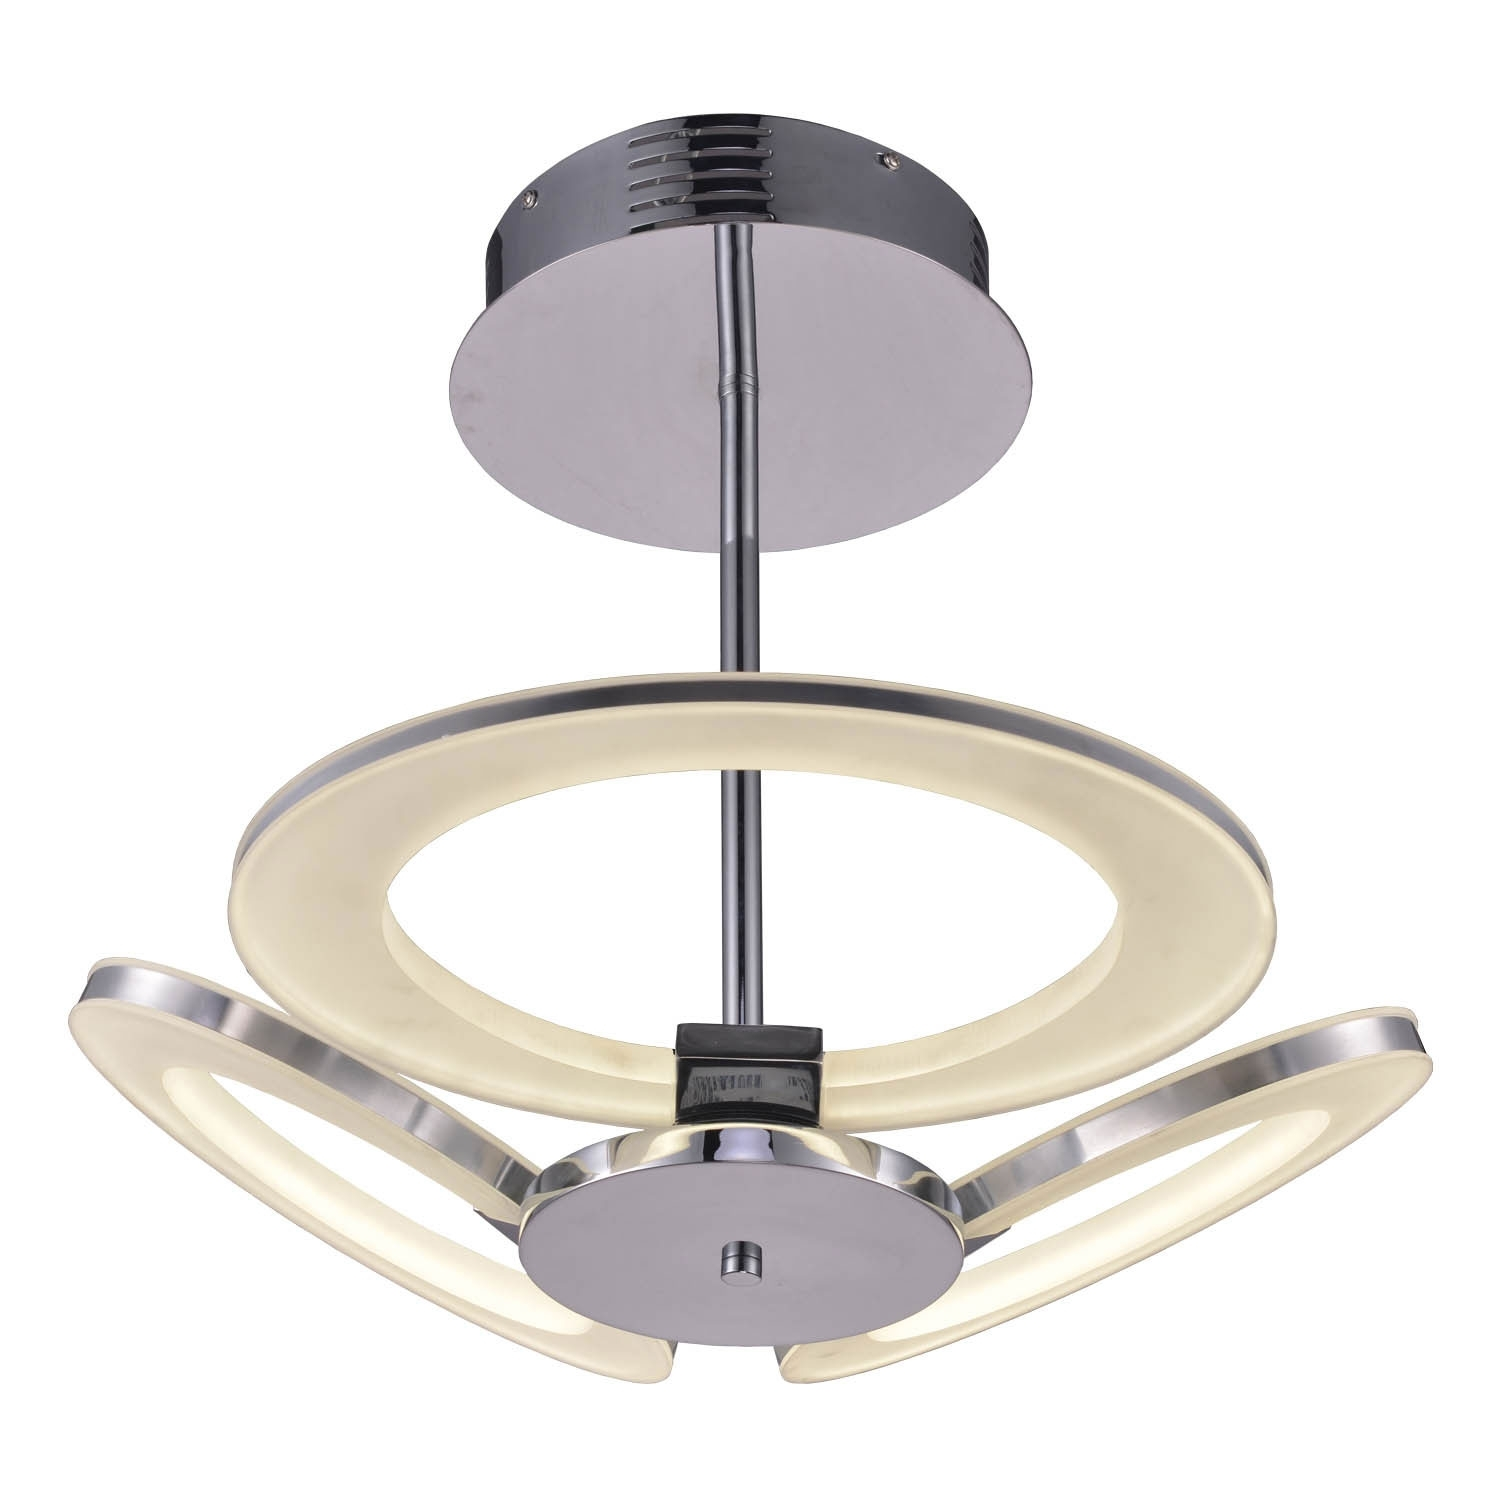 L mpara led arianna 56w for Lamparas led interior